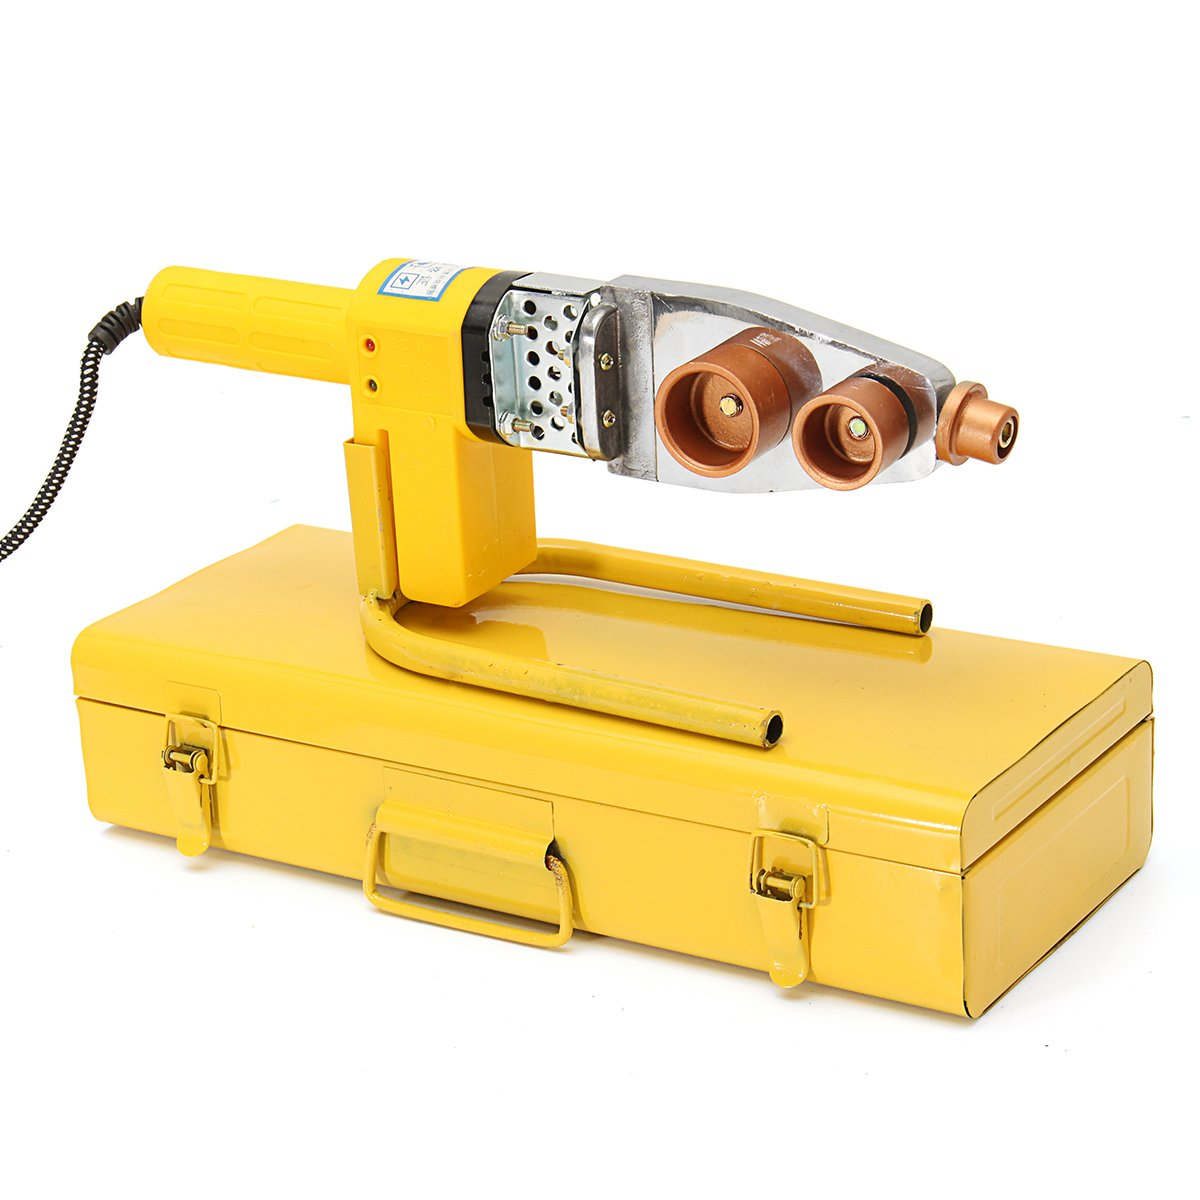 220V Full Automatic Electric Heating Tool PPR PE PP Tube Pipe Welding Machine with Box